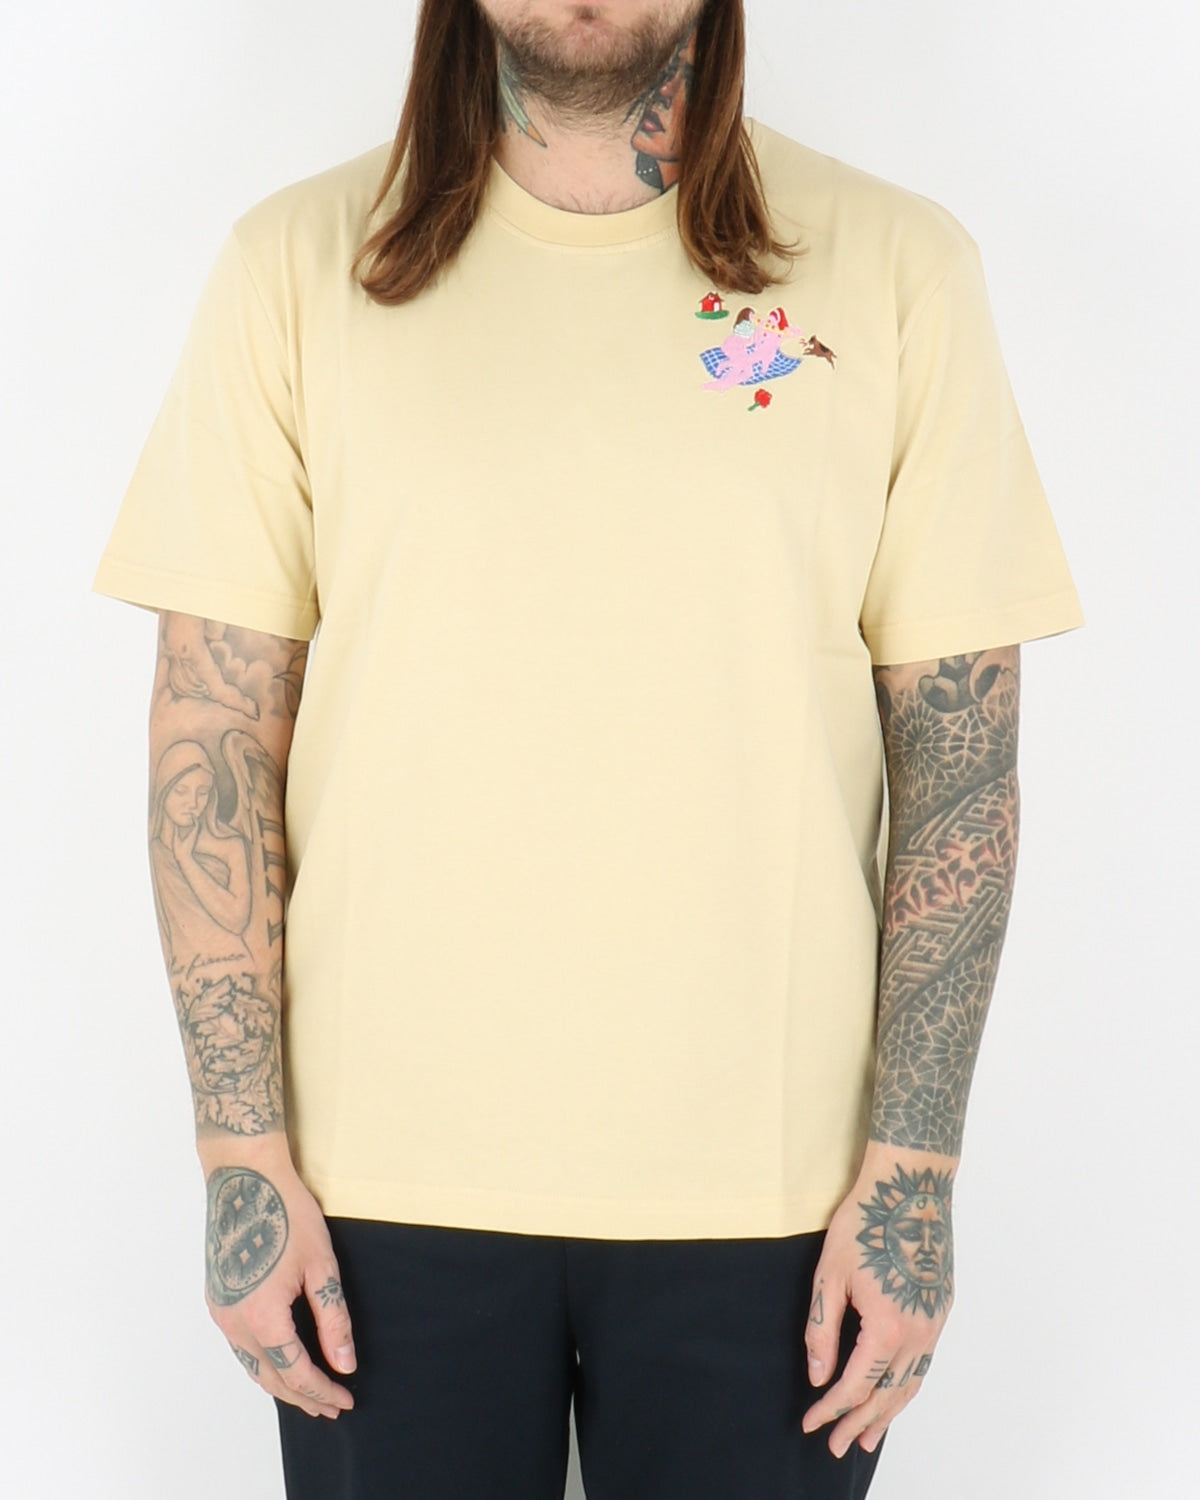 carne bollente_my bare ladies t-shirt_soft yellow_1_3